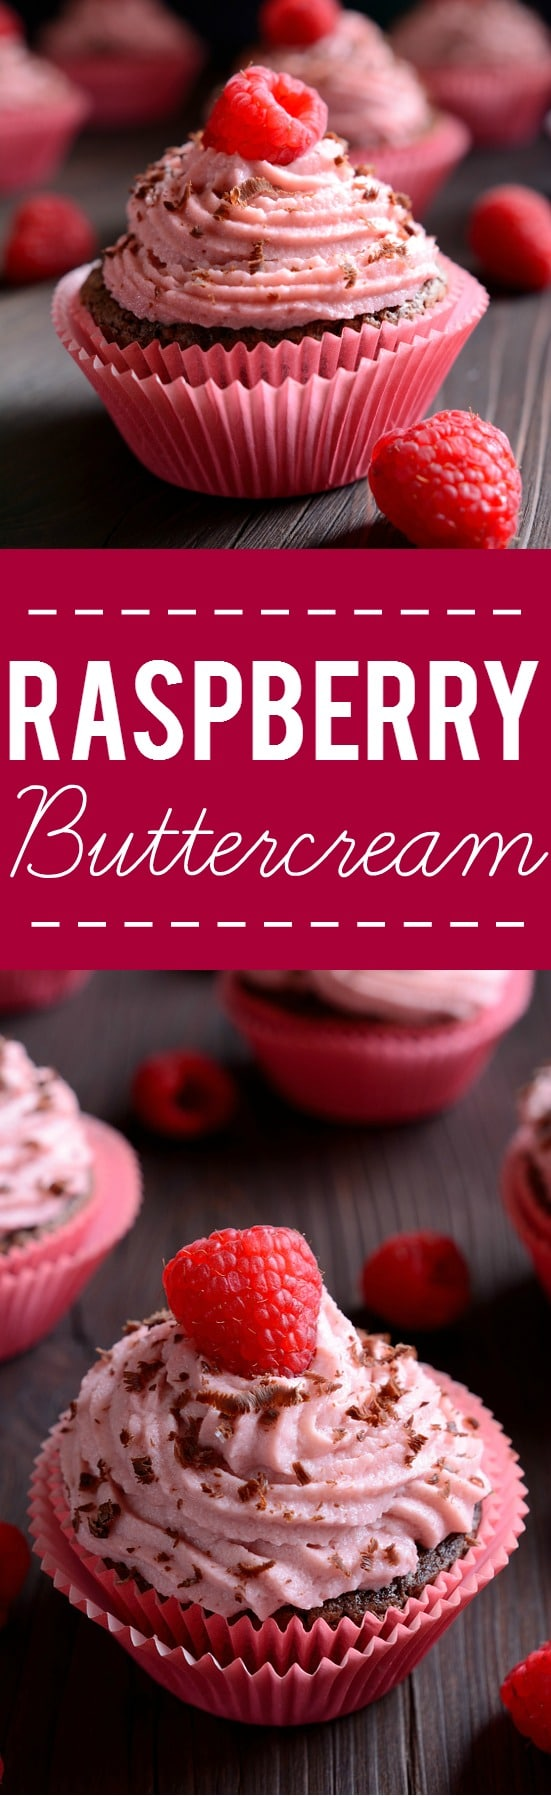 Raspberry Buttercream Frosting Recipe - Sweet and tangy raspberry buttercream recipe is easy to make and is the perfect finishing touch for your favorite cake or cupcakes!